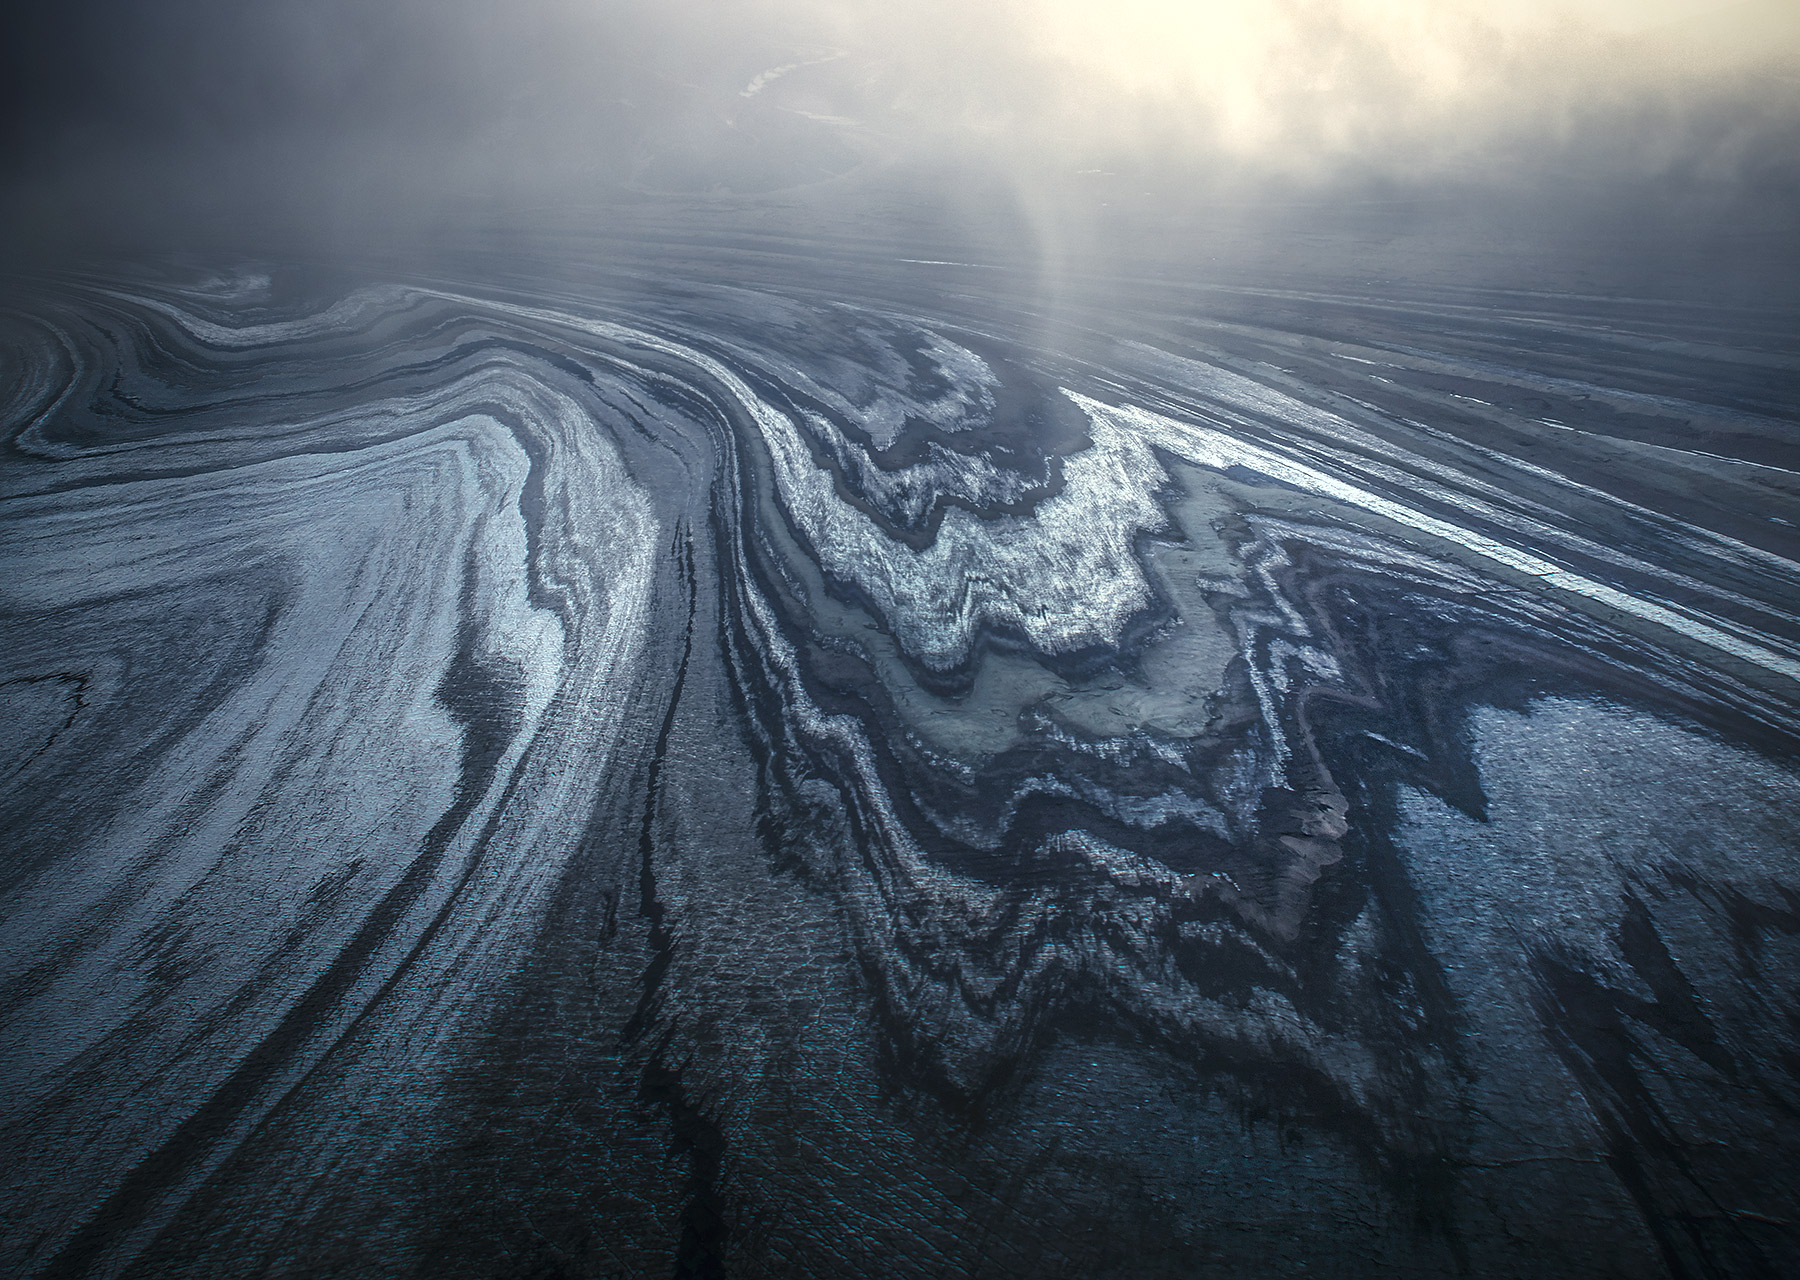 glacier, ogives, moraine, lateral, stripes, striations, alaska, photo